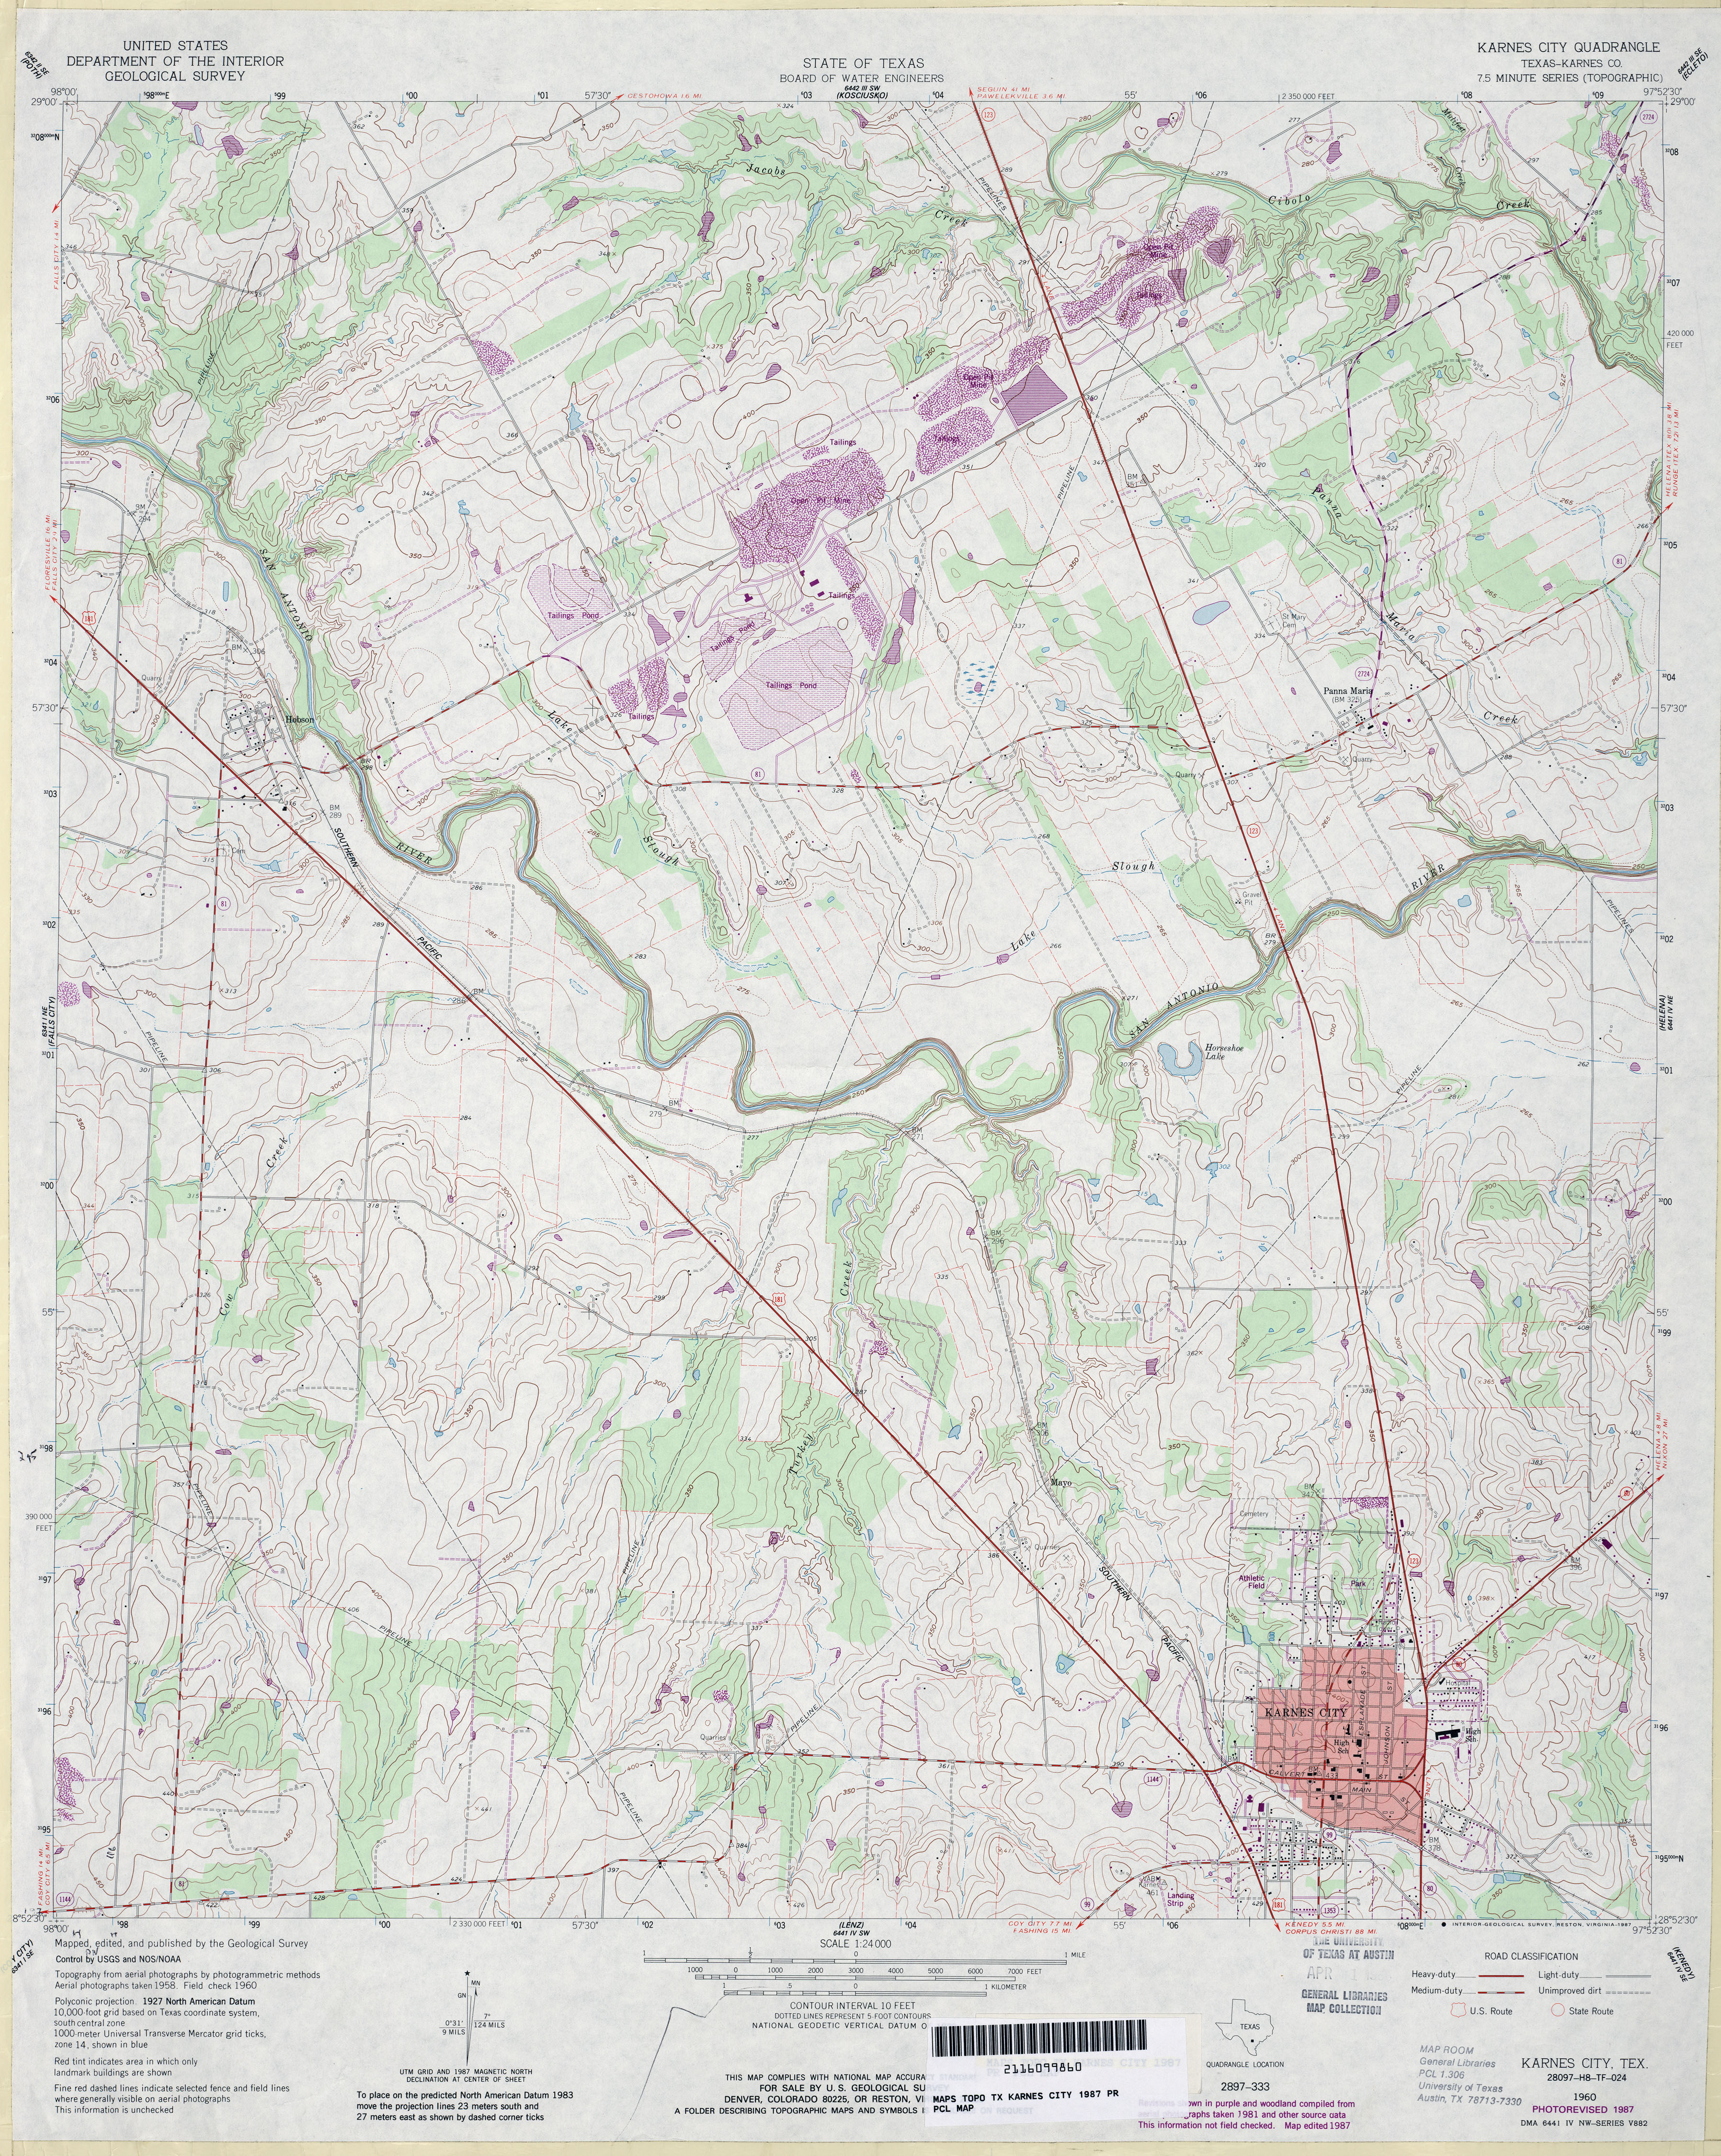 Texas Topographic Maps - Perry-Castañeda Map Collection - UT Liry on pettus tx map, south texas area map, texas cities map, goliad texas map, kenedy texas map, texas hill country road map, yorktown texas map, texas rivers map, runge tx map, texas lakes map, otto tx map, texas counties map,